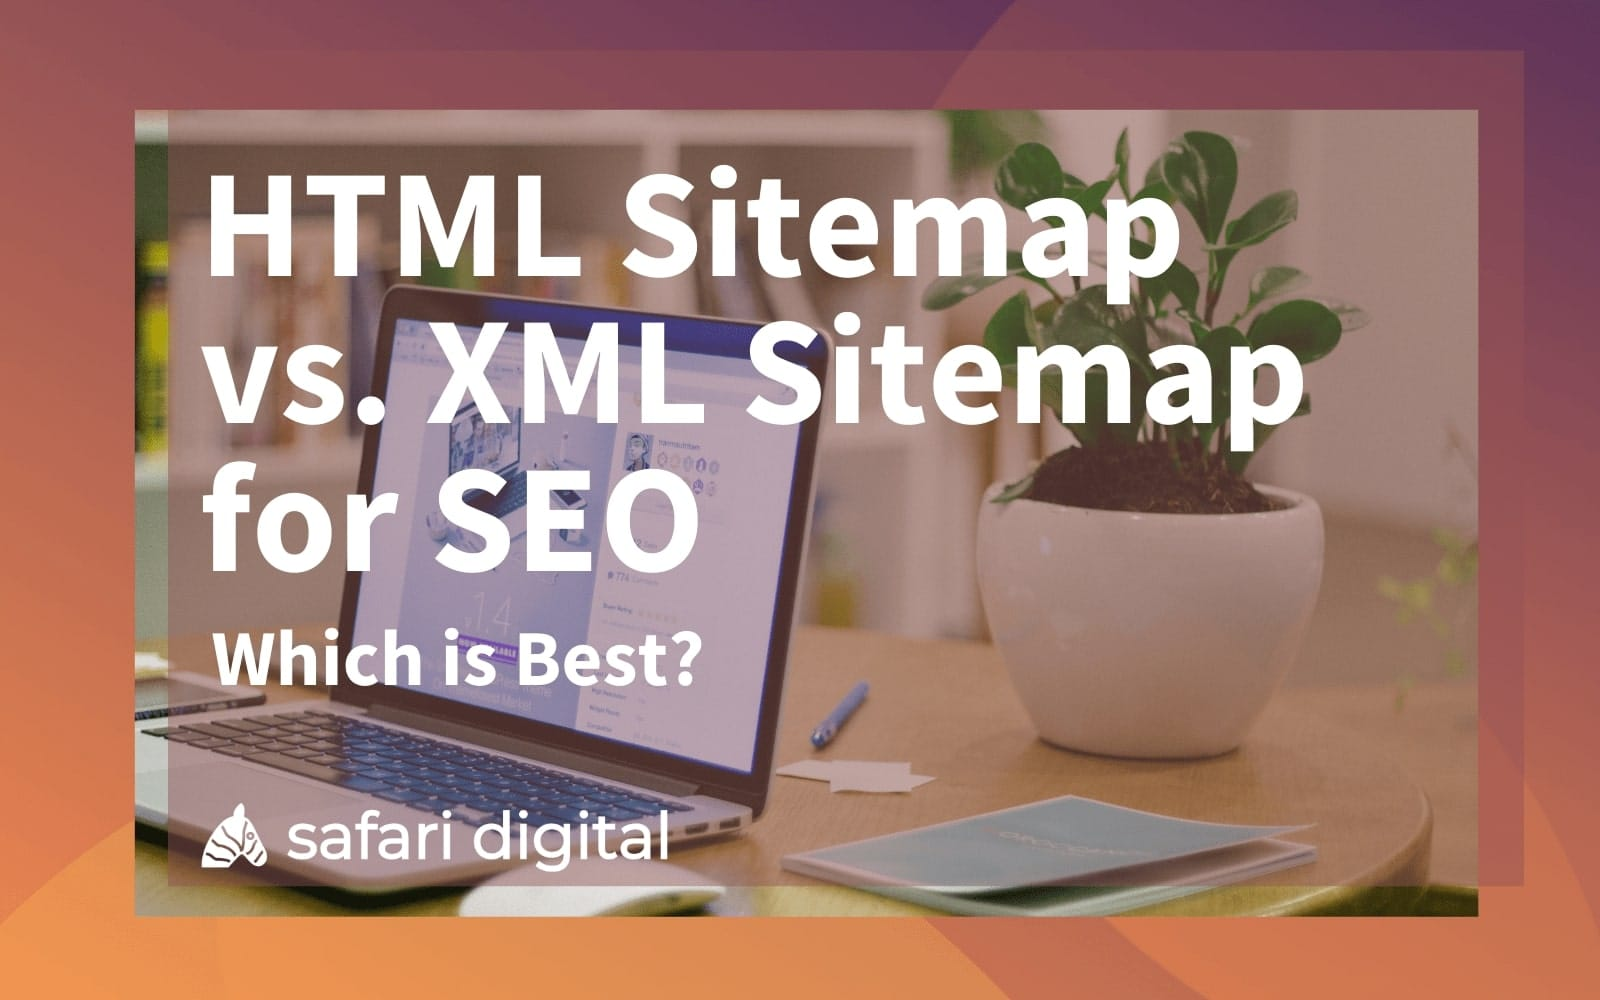 HTML Sitemap vs. XML Sitemap for SEO – Which is Best? Cover Image